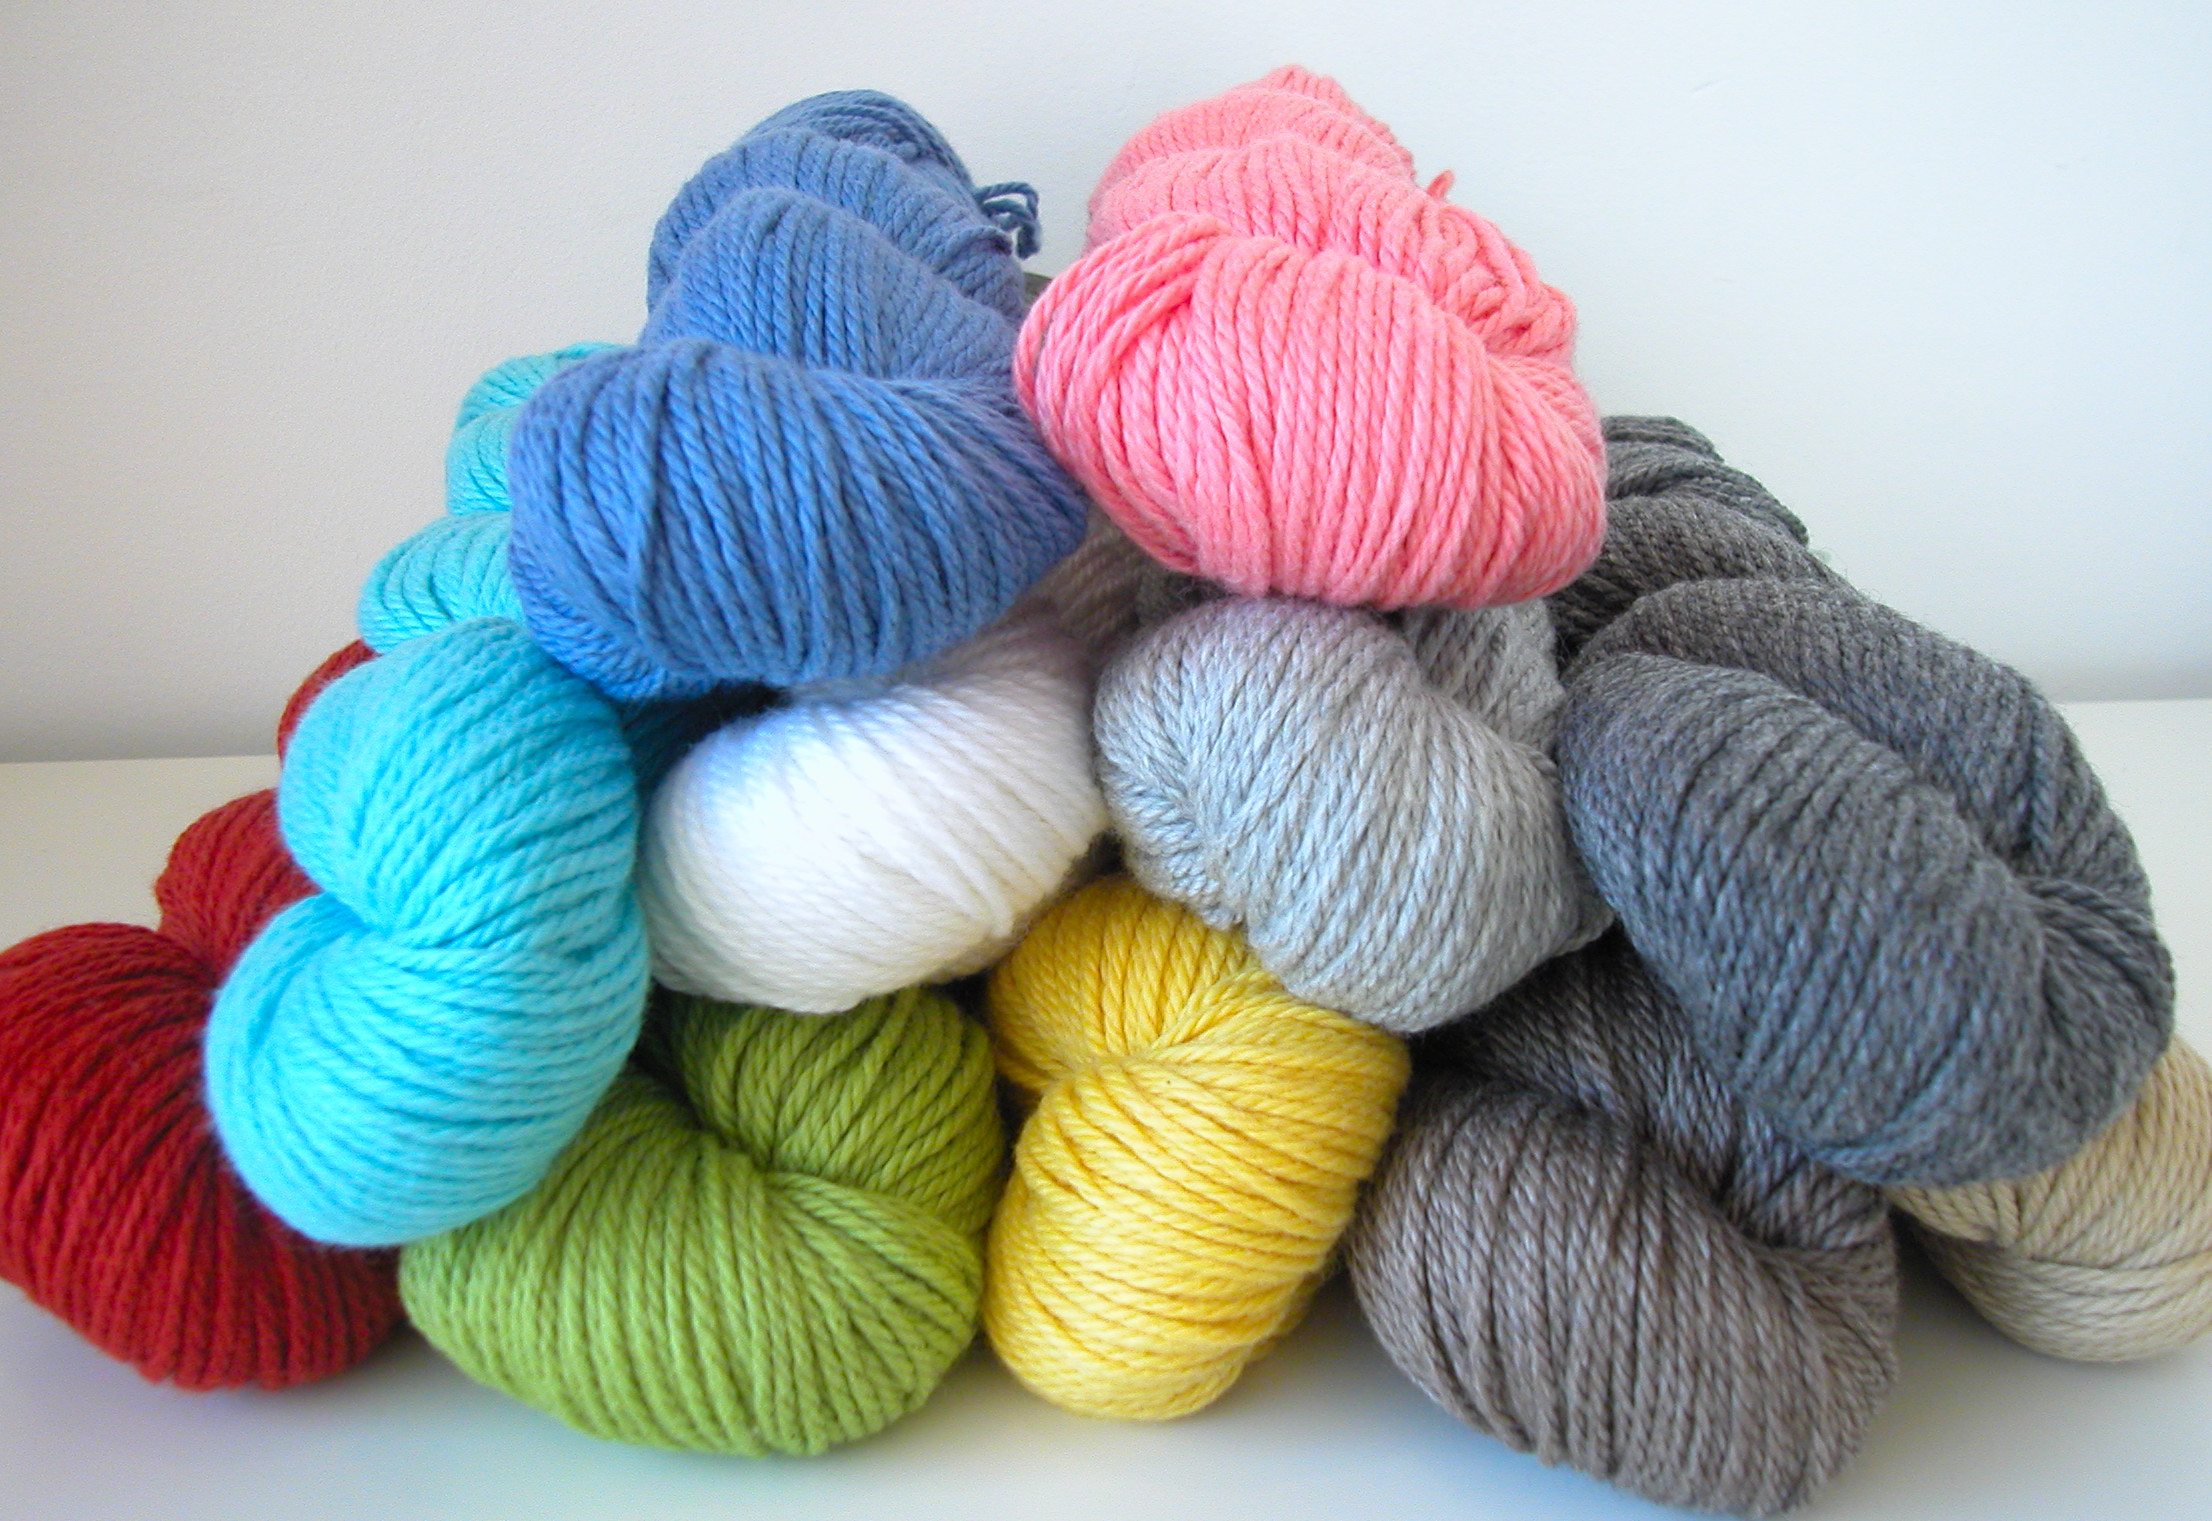 Knitting Yarn Brands : Knitting Needles And Yarn A brand new yarn to the knit